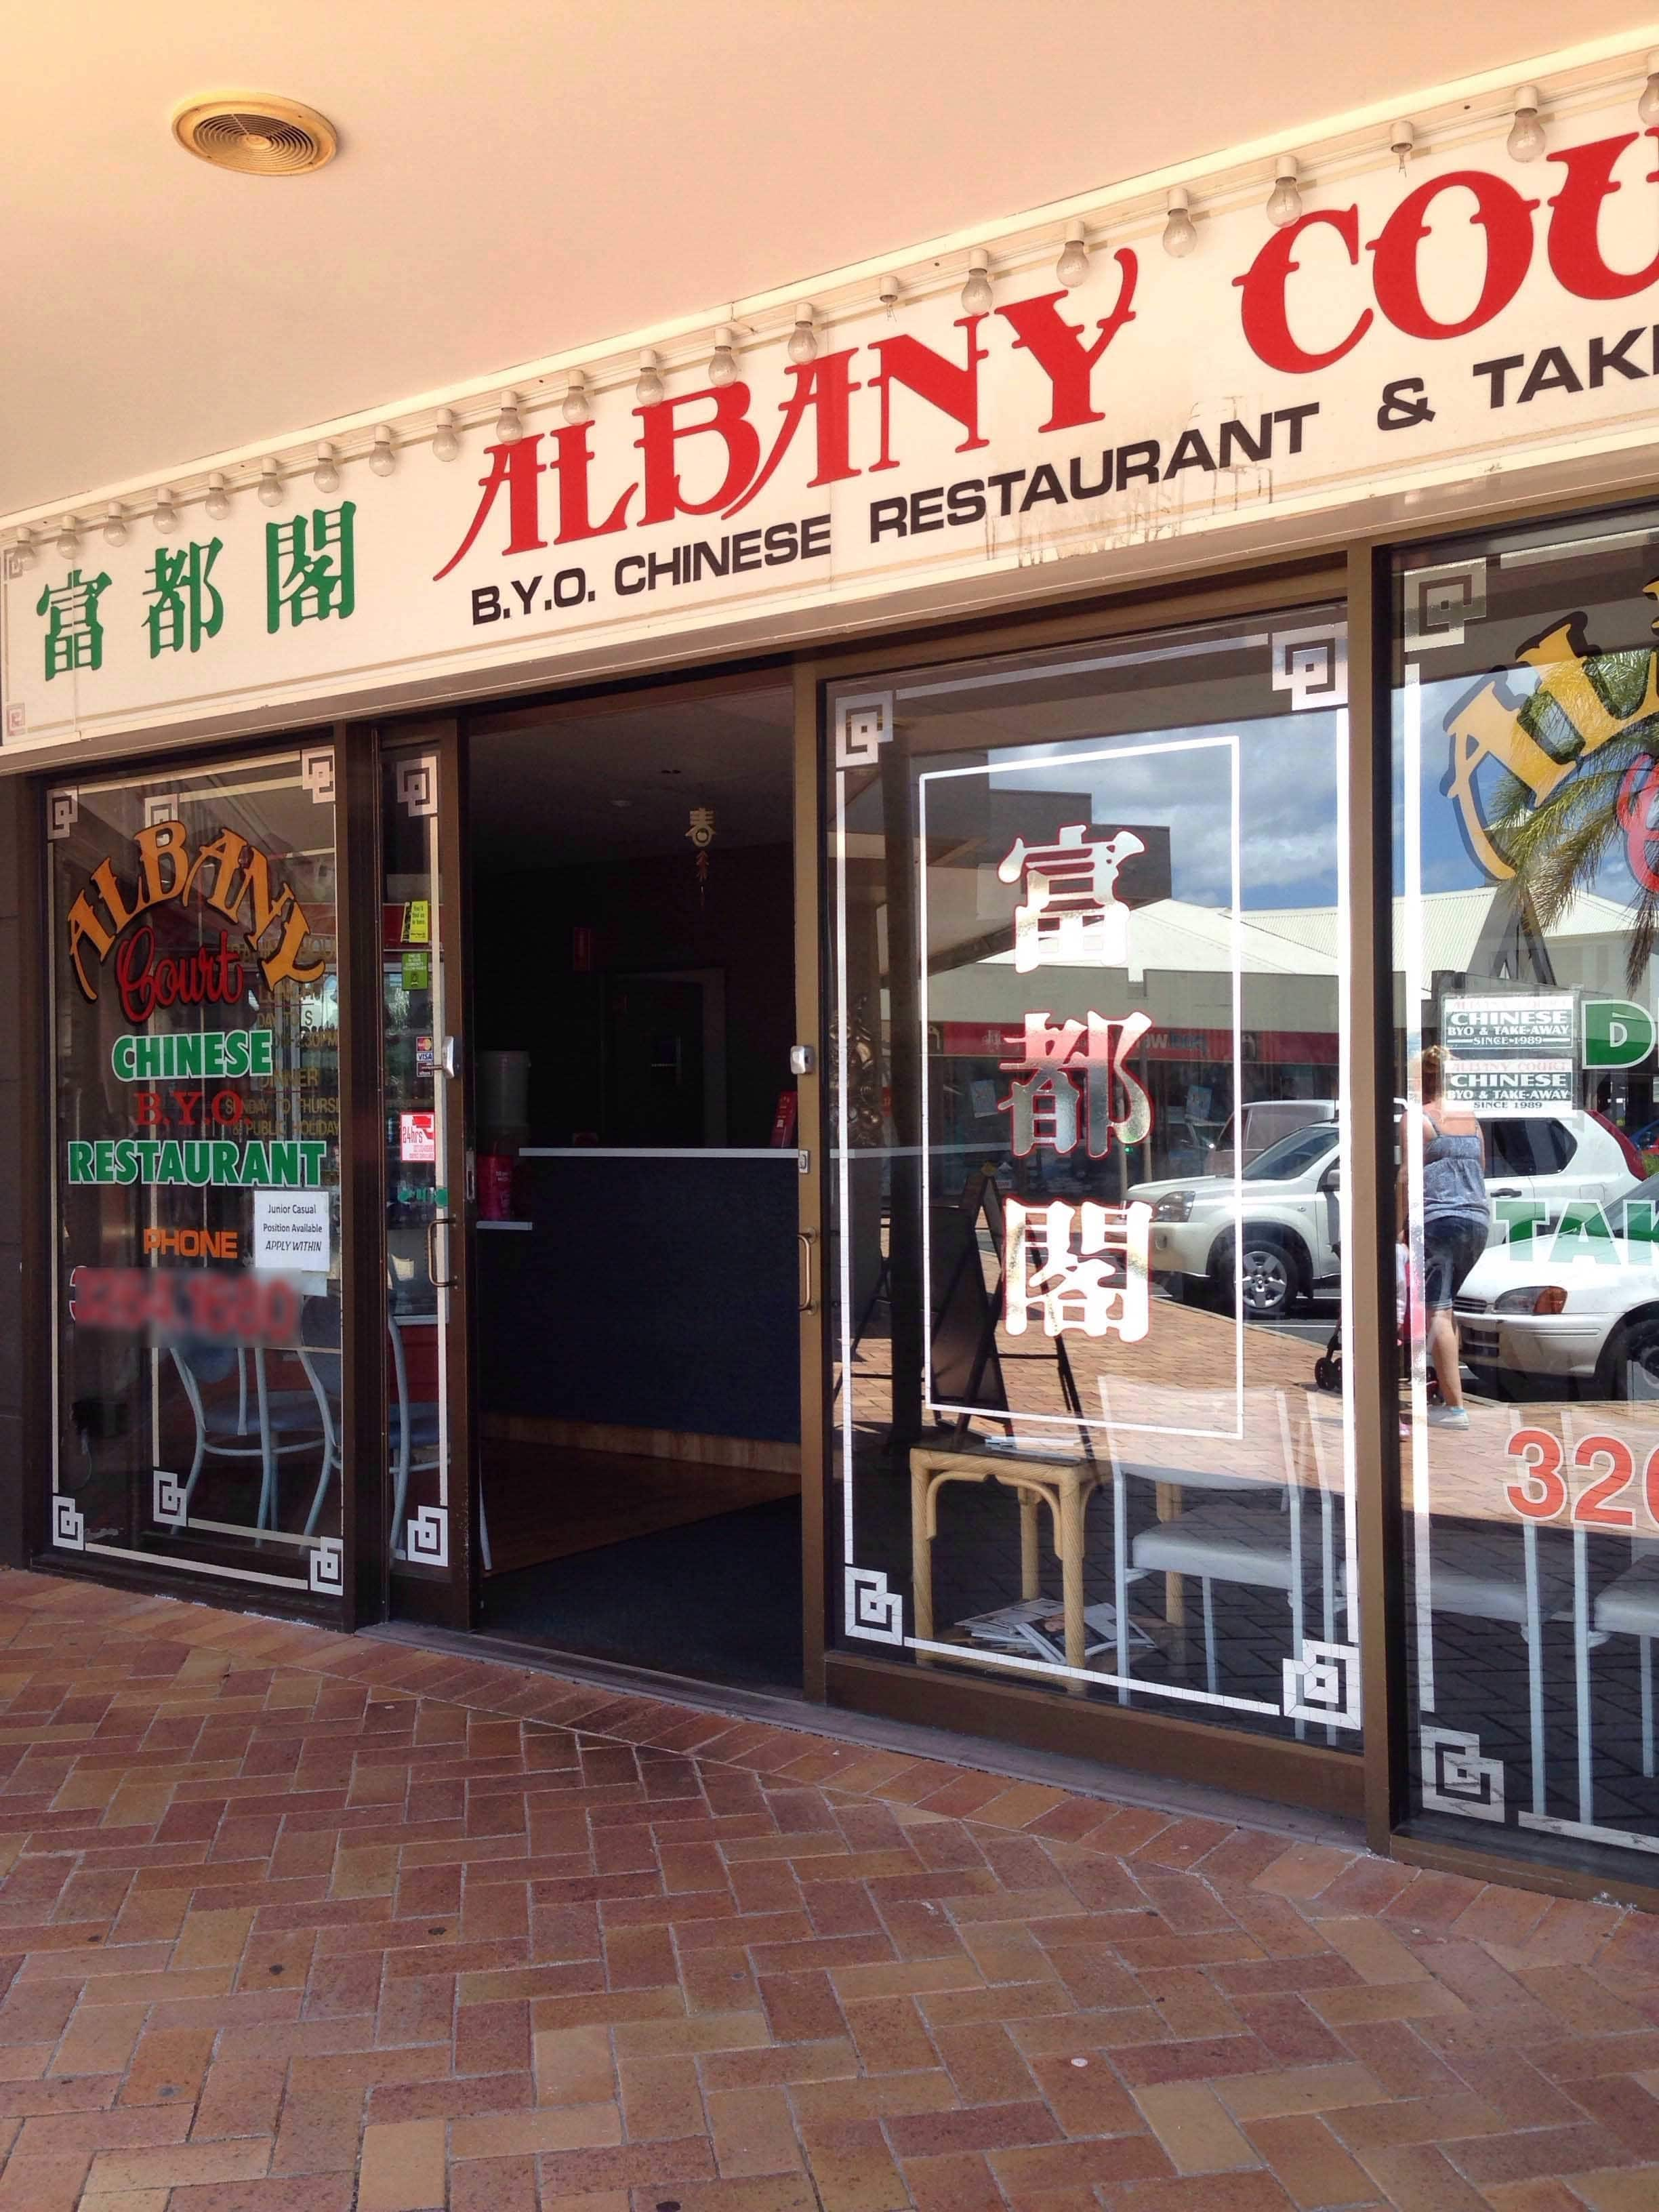 Albany Court Chinese Restaurant | Shop 7A 720 ALBANY CREEK ROAD, Albany Creek, Queensland 4035 | +61 7 3264 1680